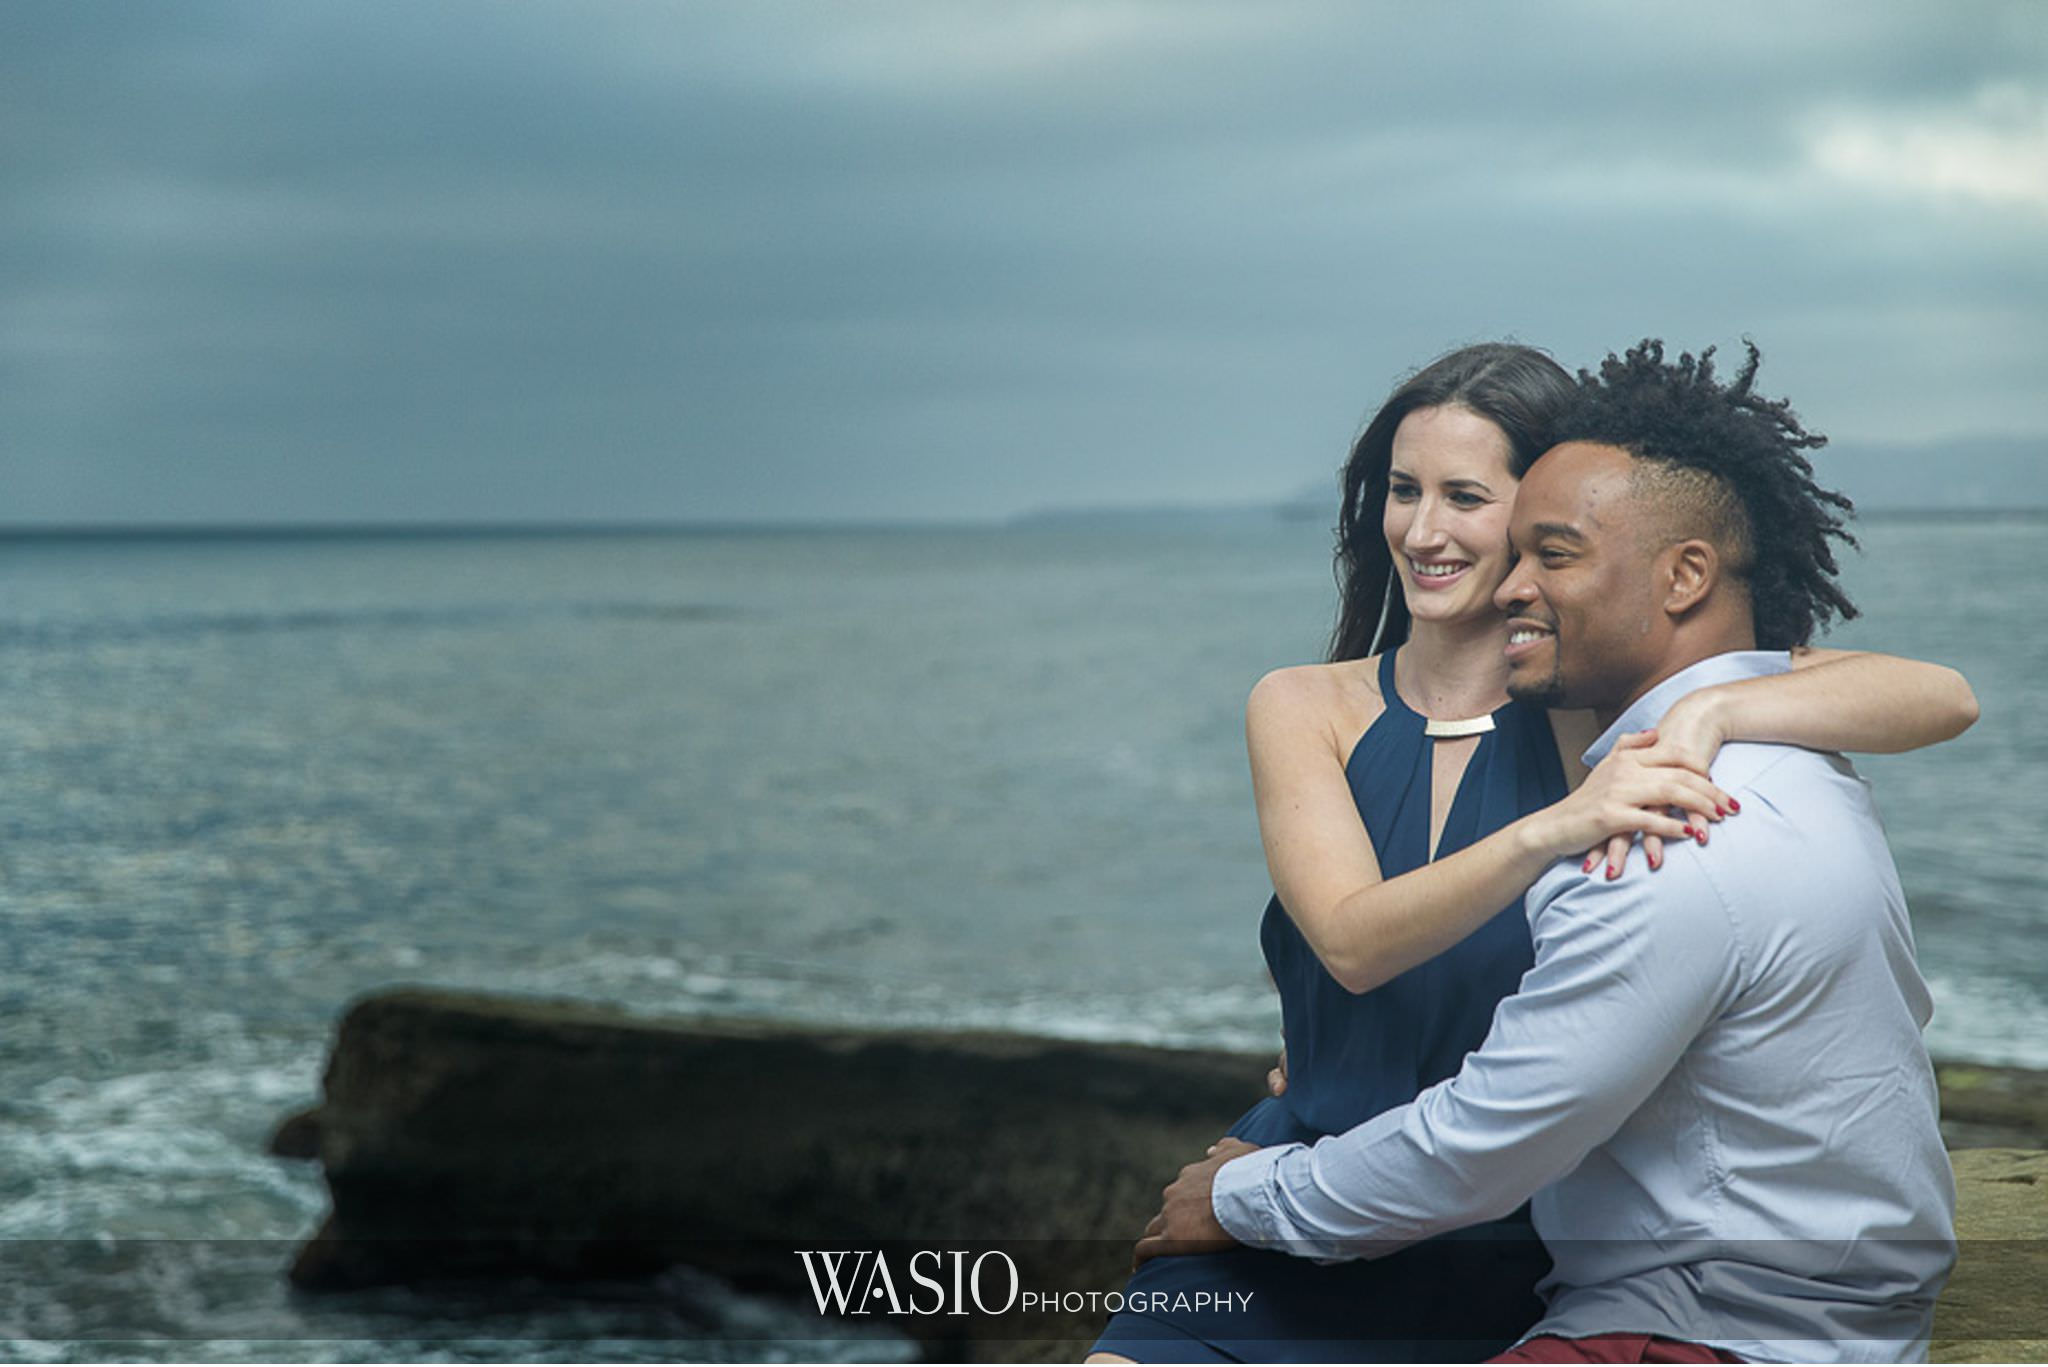 Sunset-Cliffs-San-Diego-Engagement-ocean-beach-photos-63 Sunset Cliffs San Diego Engagement - Laura and La Broi